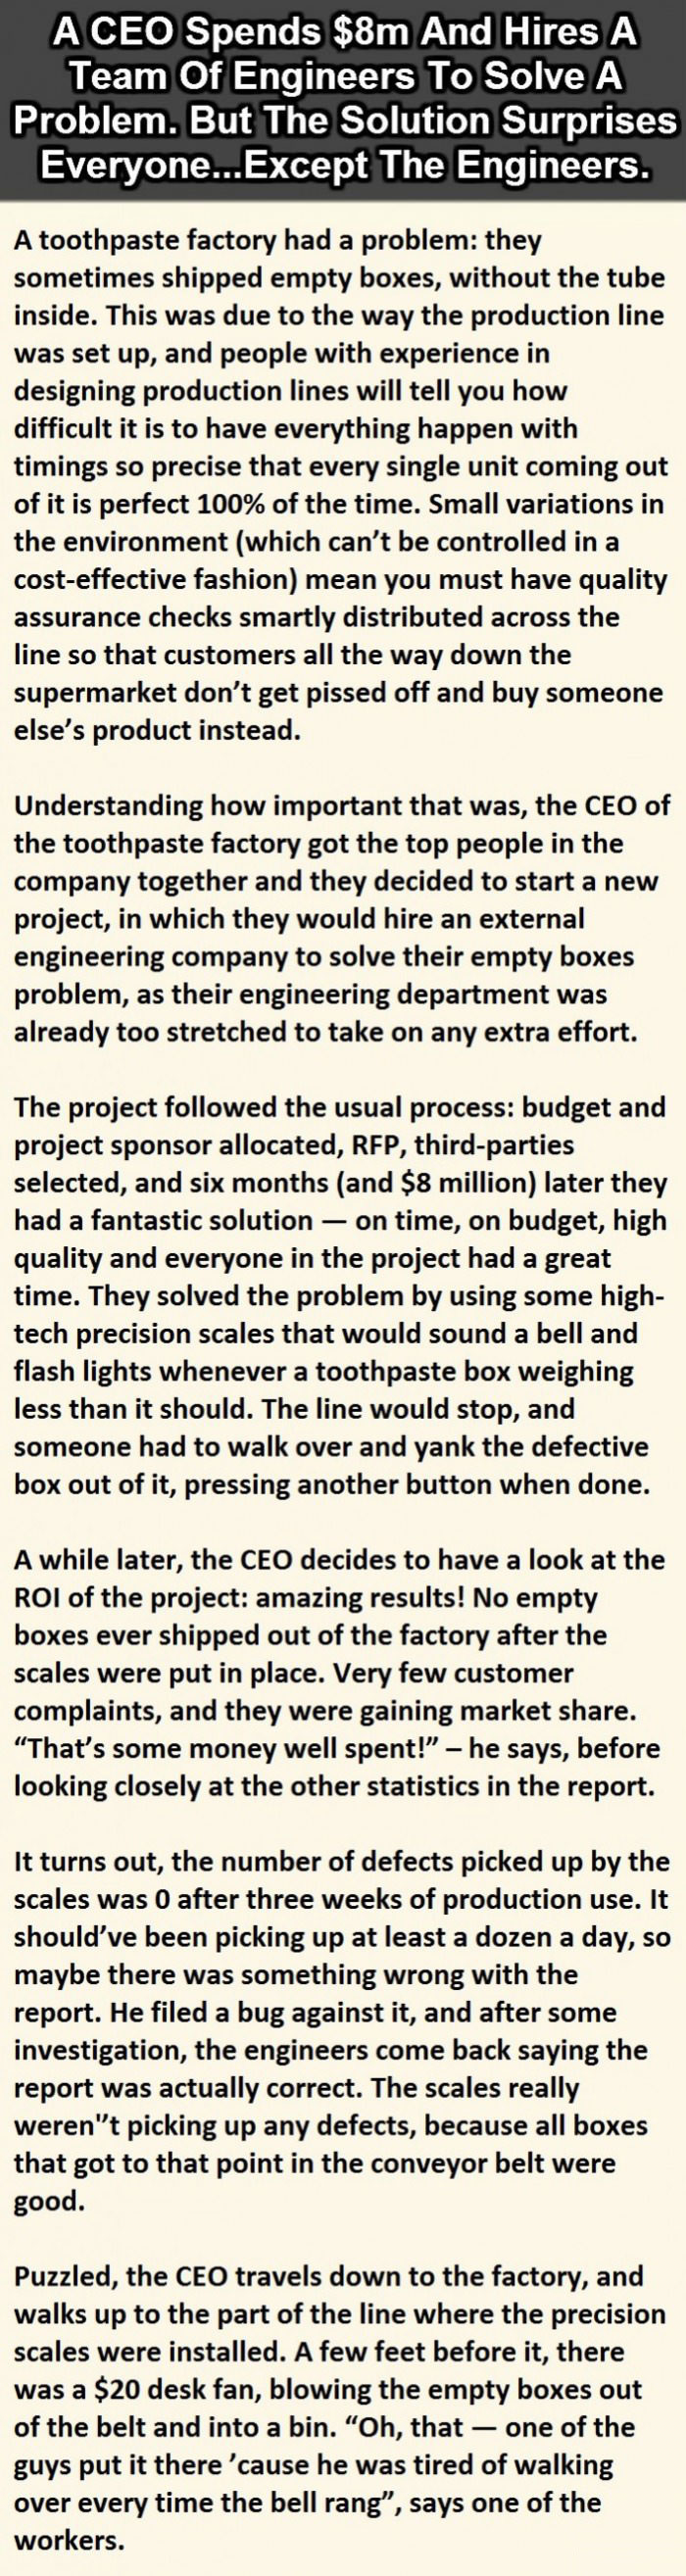 a ceo spends $8m and hires a team of engineers to solve a problem but the solution surprises everyone, story